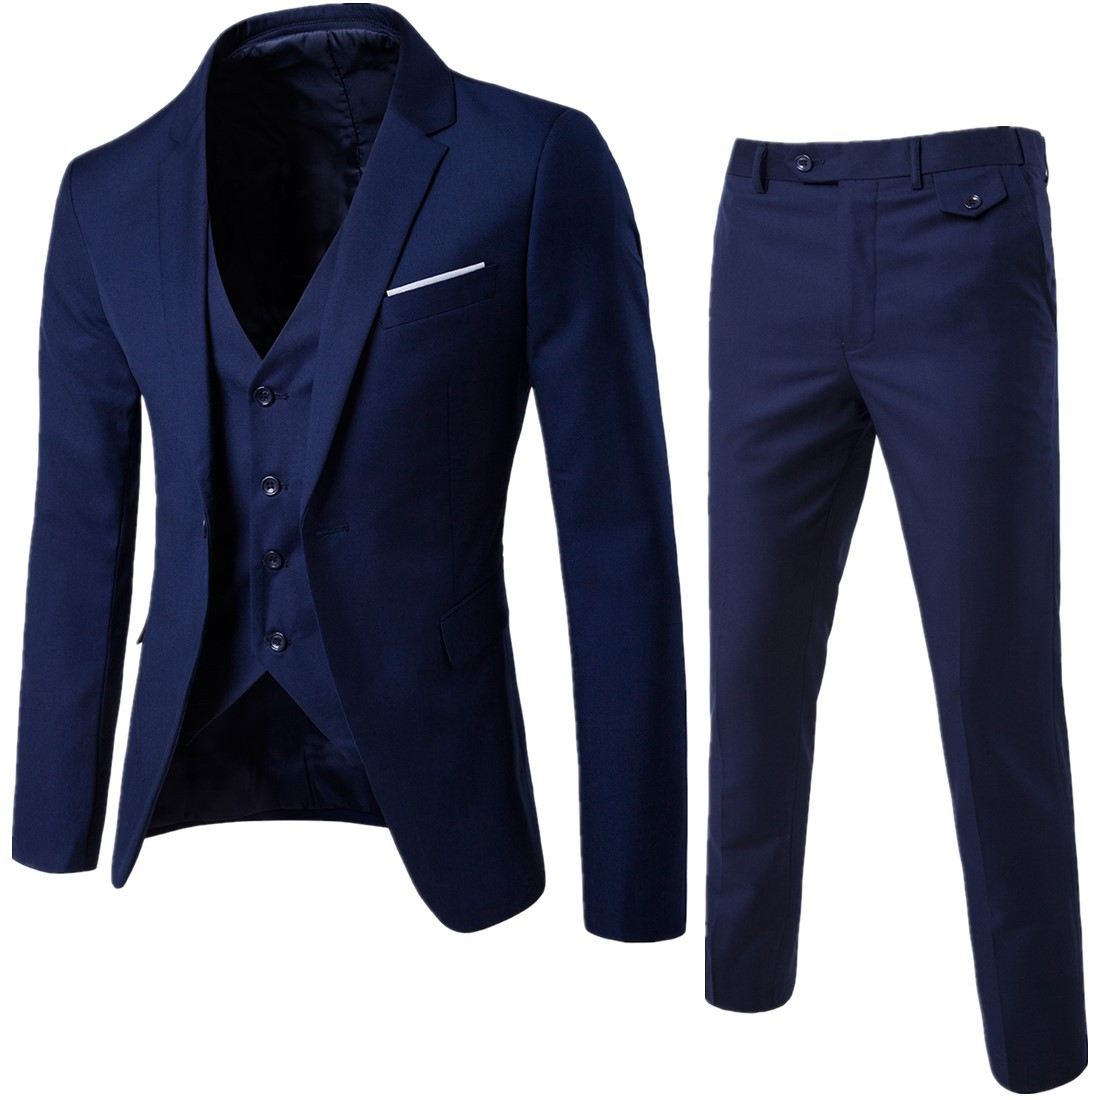 2018 New Style Korean-style Suit MEN'S Suit Slim Fit Small Suit Men Groom Marriage Formal Dress Formal Wear Three-piece Set Fash